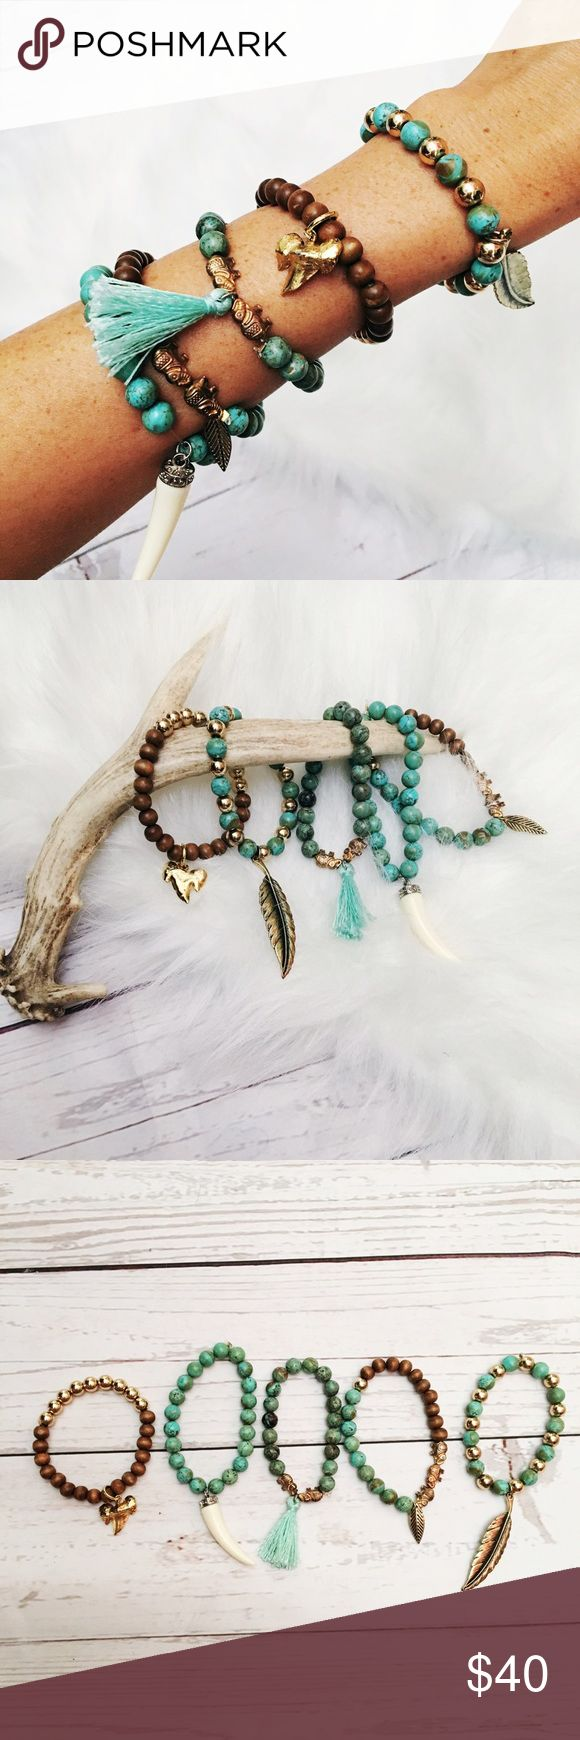 Genuine Turquoise bracelets Beautiful genuine turquoise beaded bracelet bundle. On stretch chord. Turquoise is believed to have powerful healing properties especially for the respiratory and immune systems. 🌙✨ nice heavy beads 🦋. Not Kendra scott just similar Kendra Scott Jewelry Bracelets